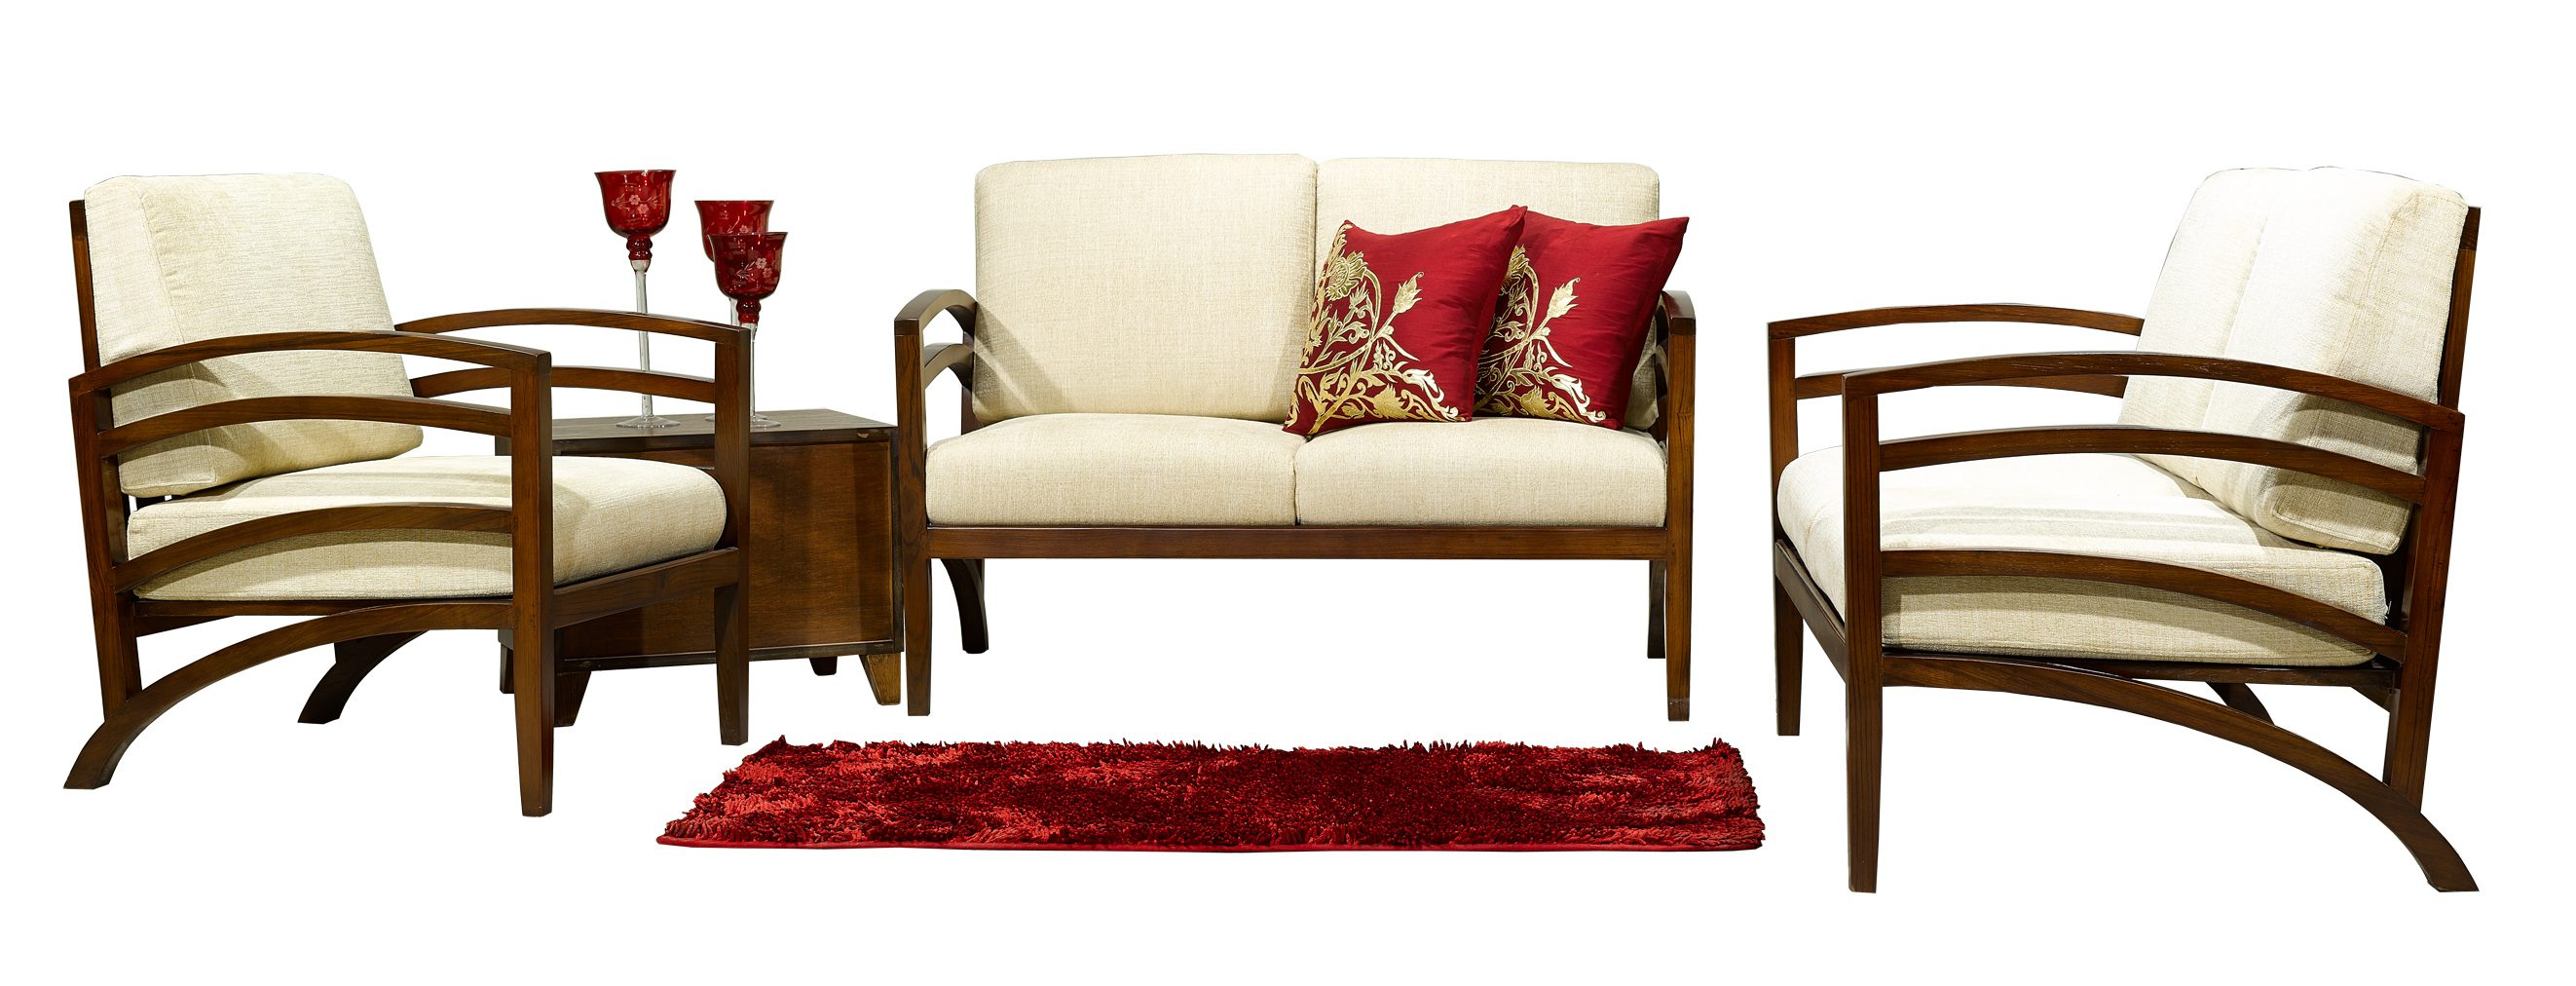 Exclusive & Ultra Slim Sofa in Modern Home Furniture